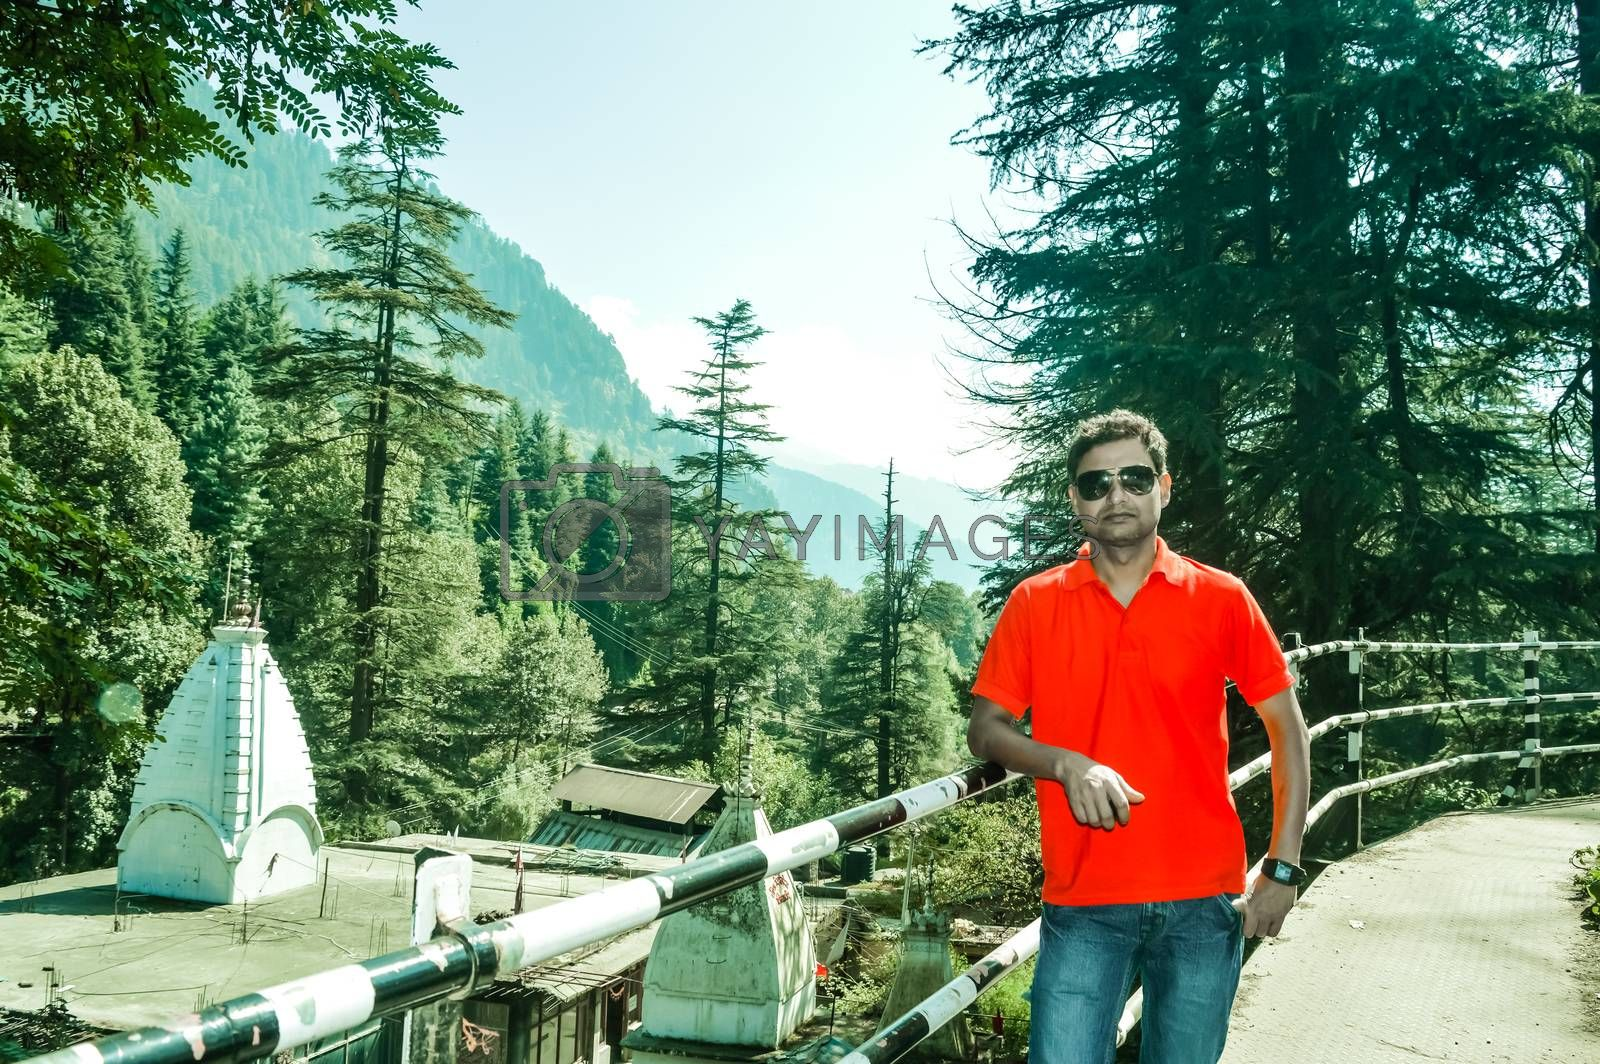 A man standing in the heart of Manali City, Himachal Pradesh, Kullu, India. It is a popular tourist destination in northern India.